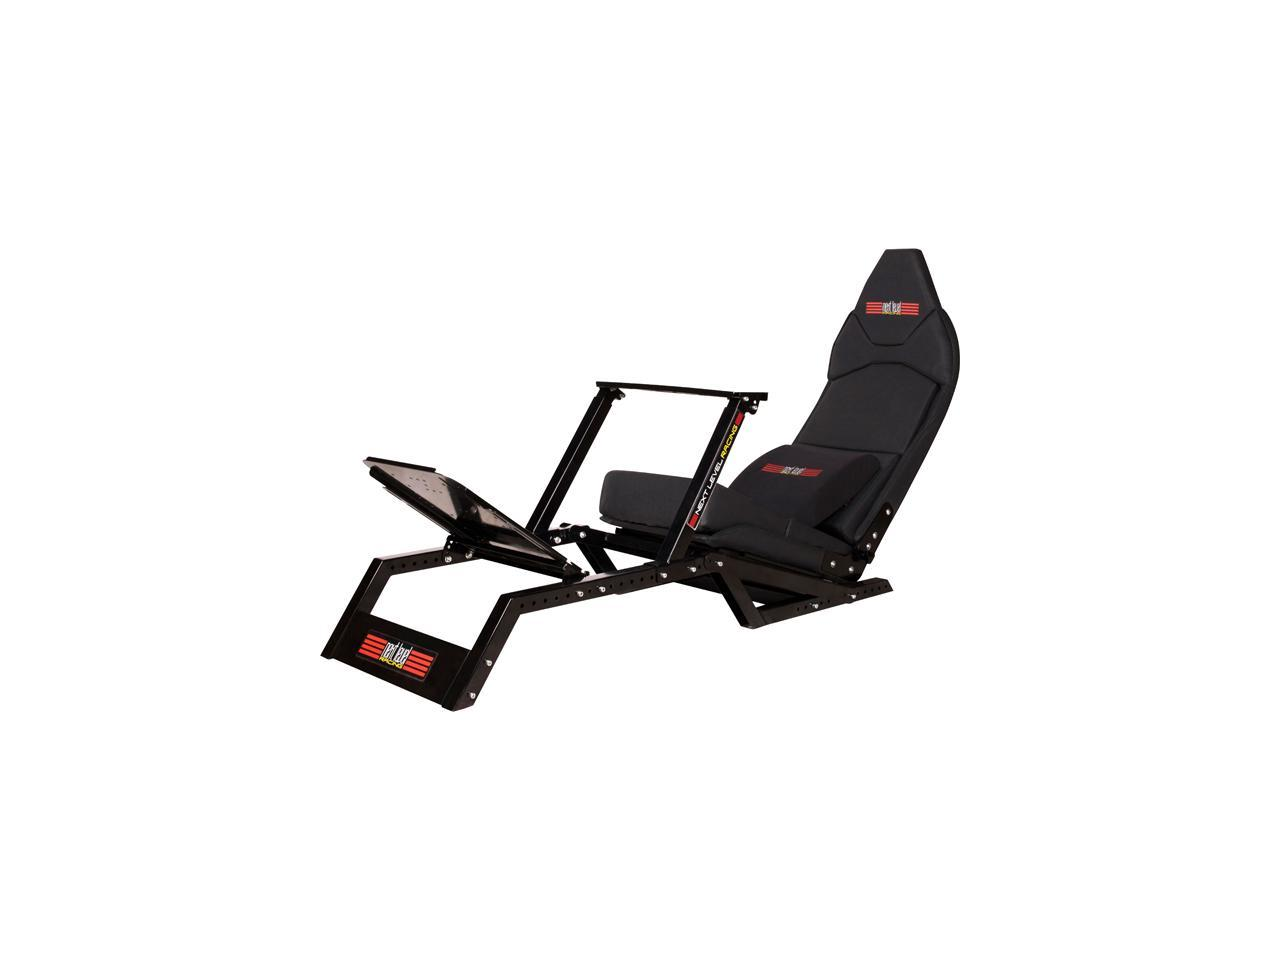 Gaming Accessories,Newegg.com